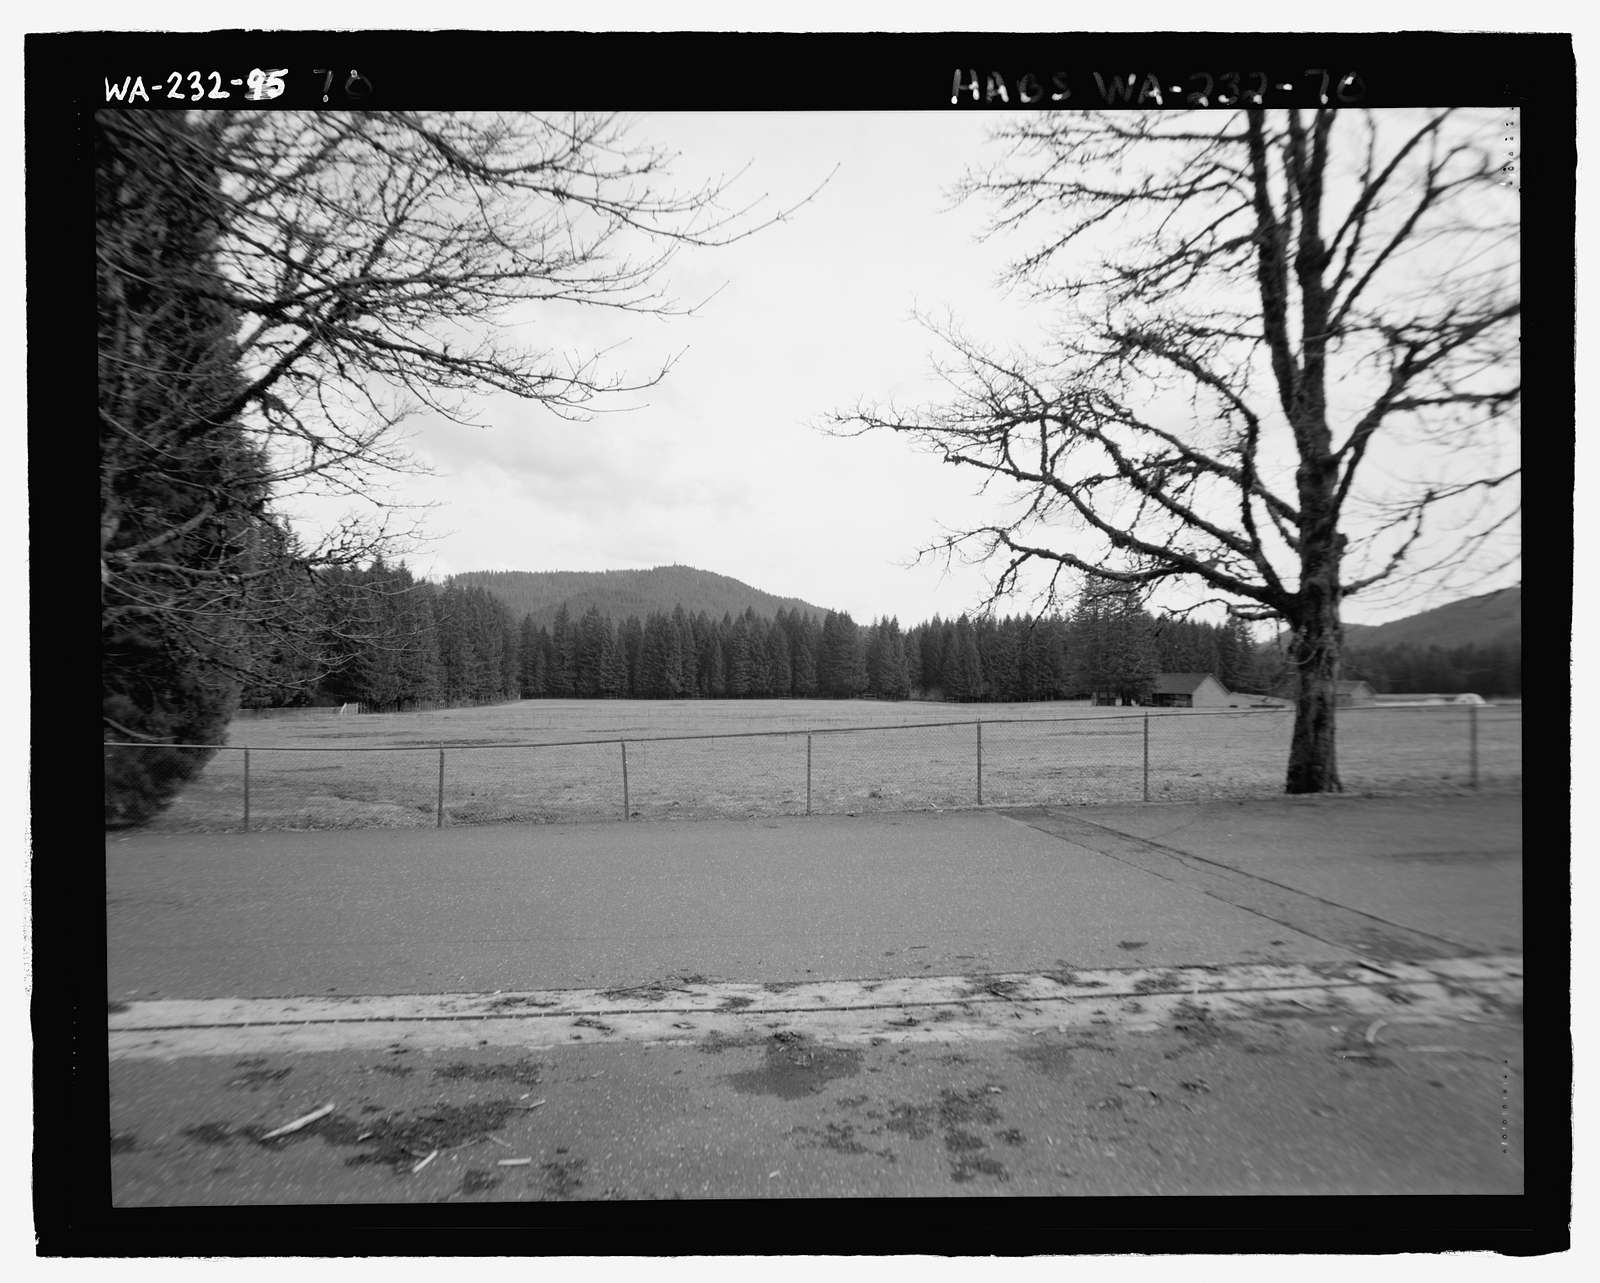 Wind River Administrative Site, Near Lookout Mountain Road, Carson, Skamania County, WA